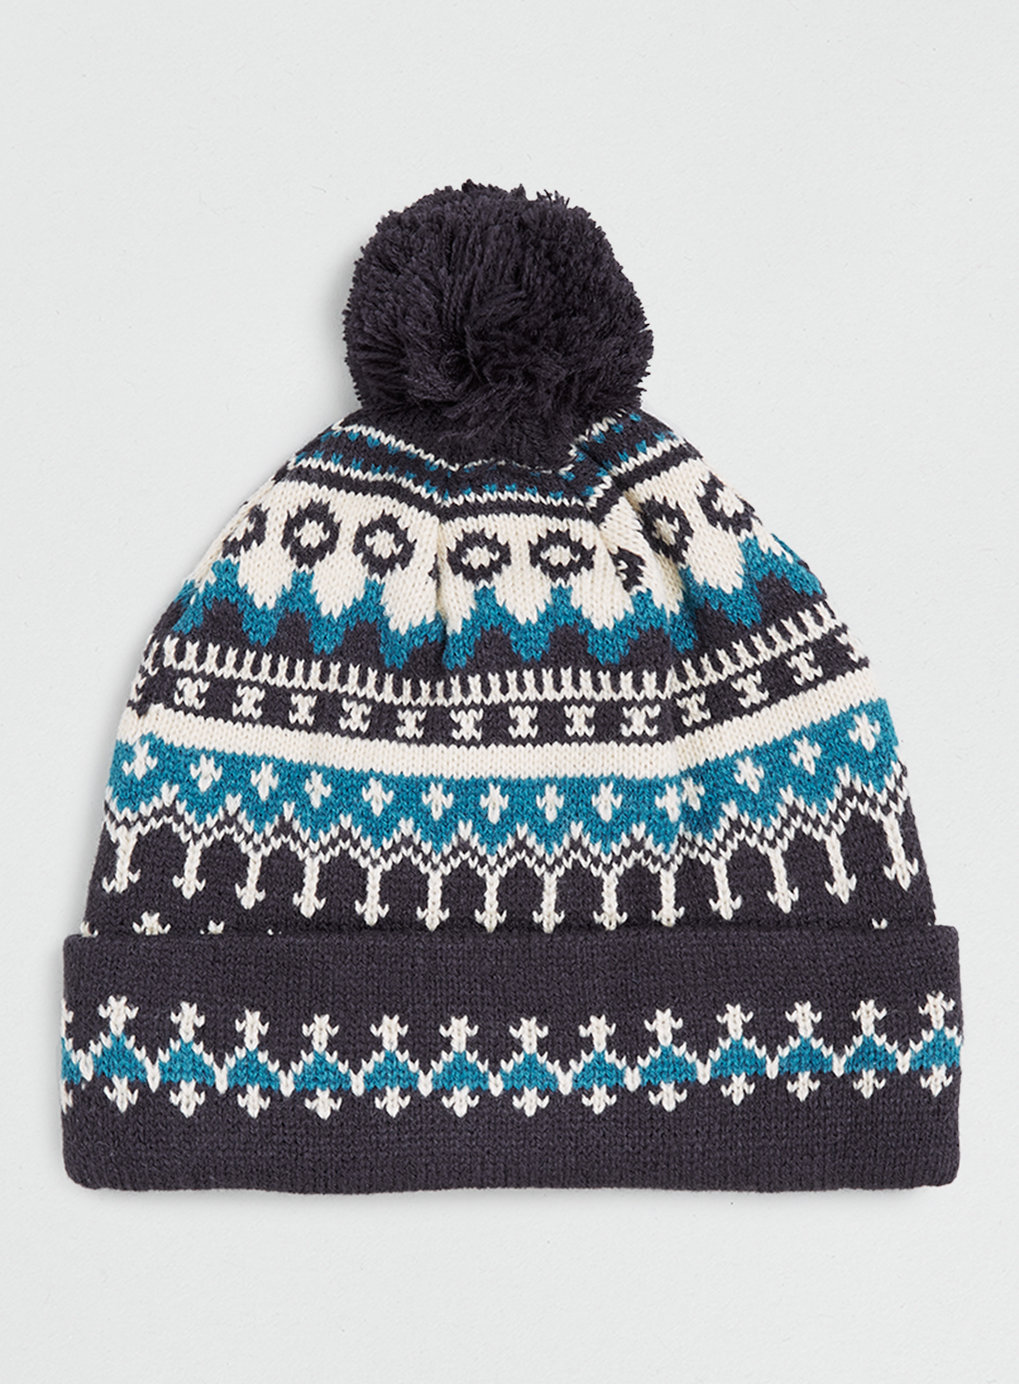 Navy and Teal Bobble Beanie , was $20 ,  now $16